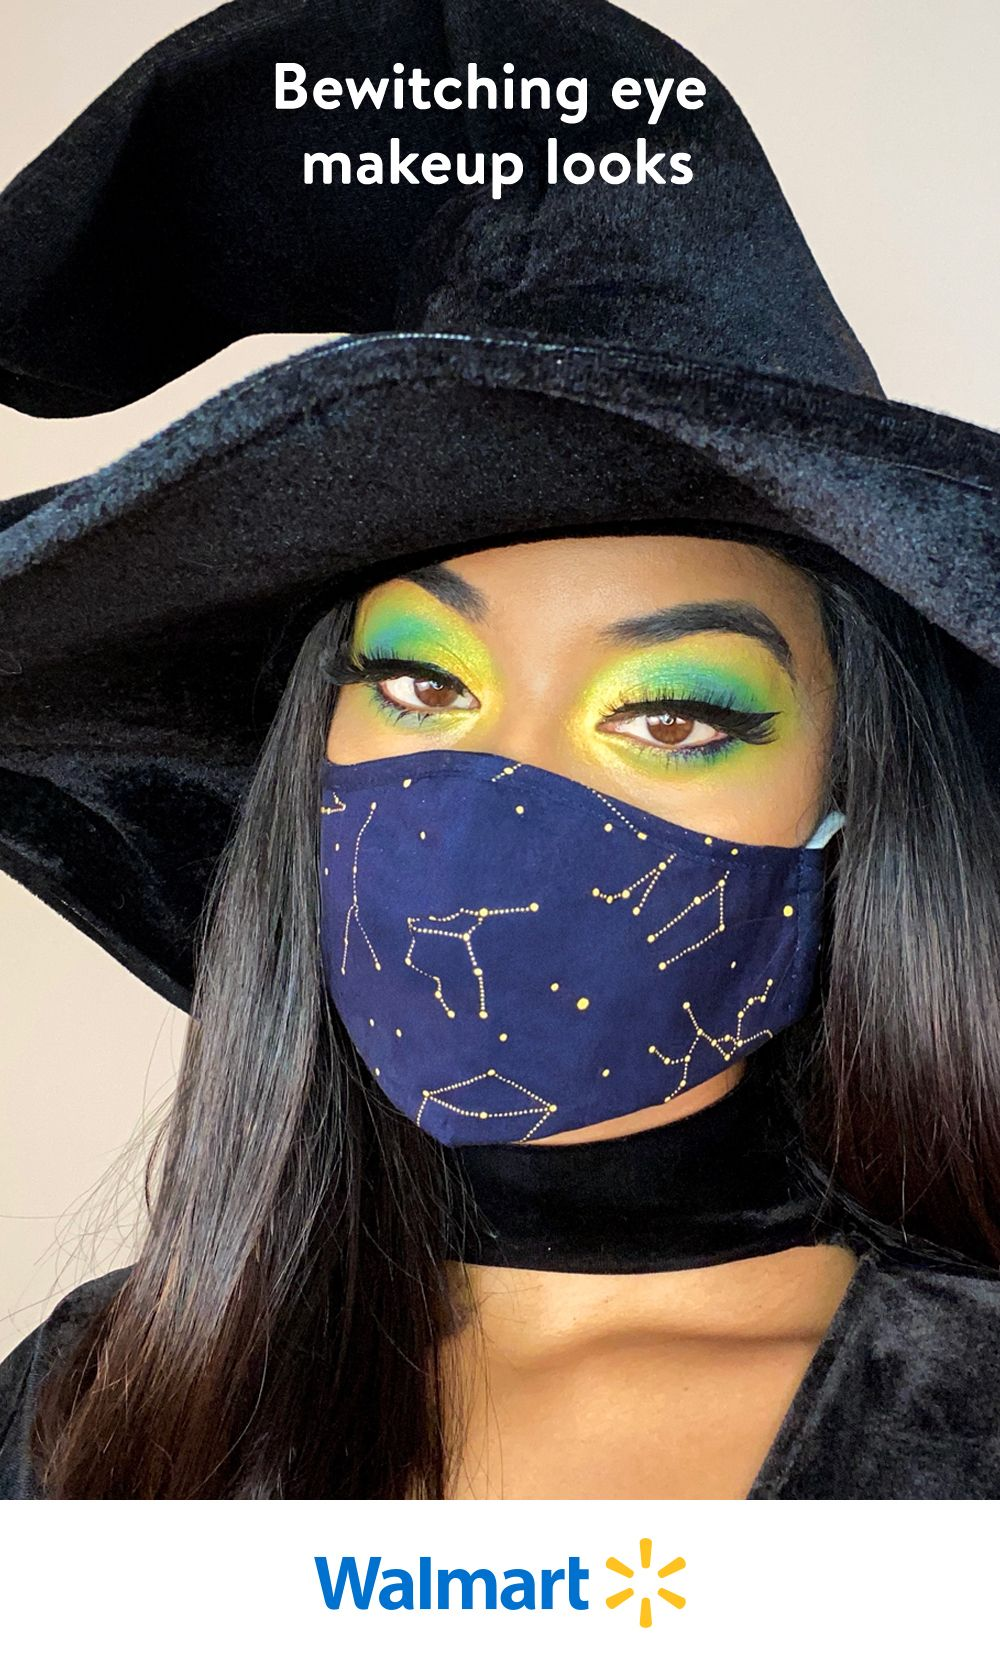 Have fun with eye makeup this Halloween! Walmart's beauty shop has everything you need for mask-friendly makeup looks that are sultry, scary, or sweet.